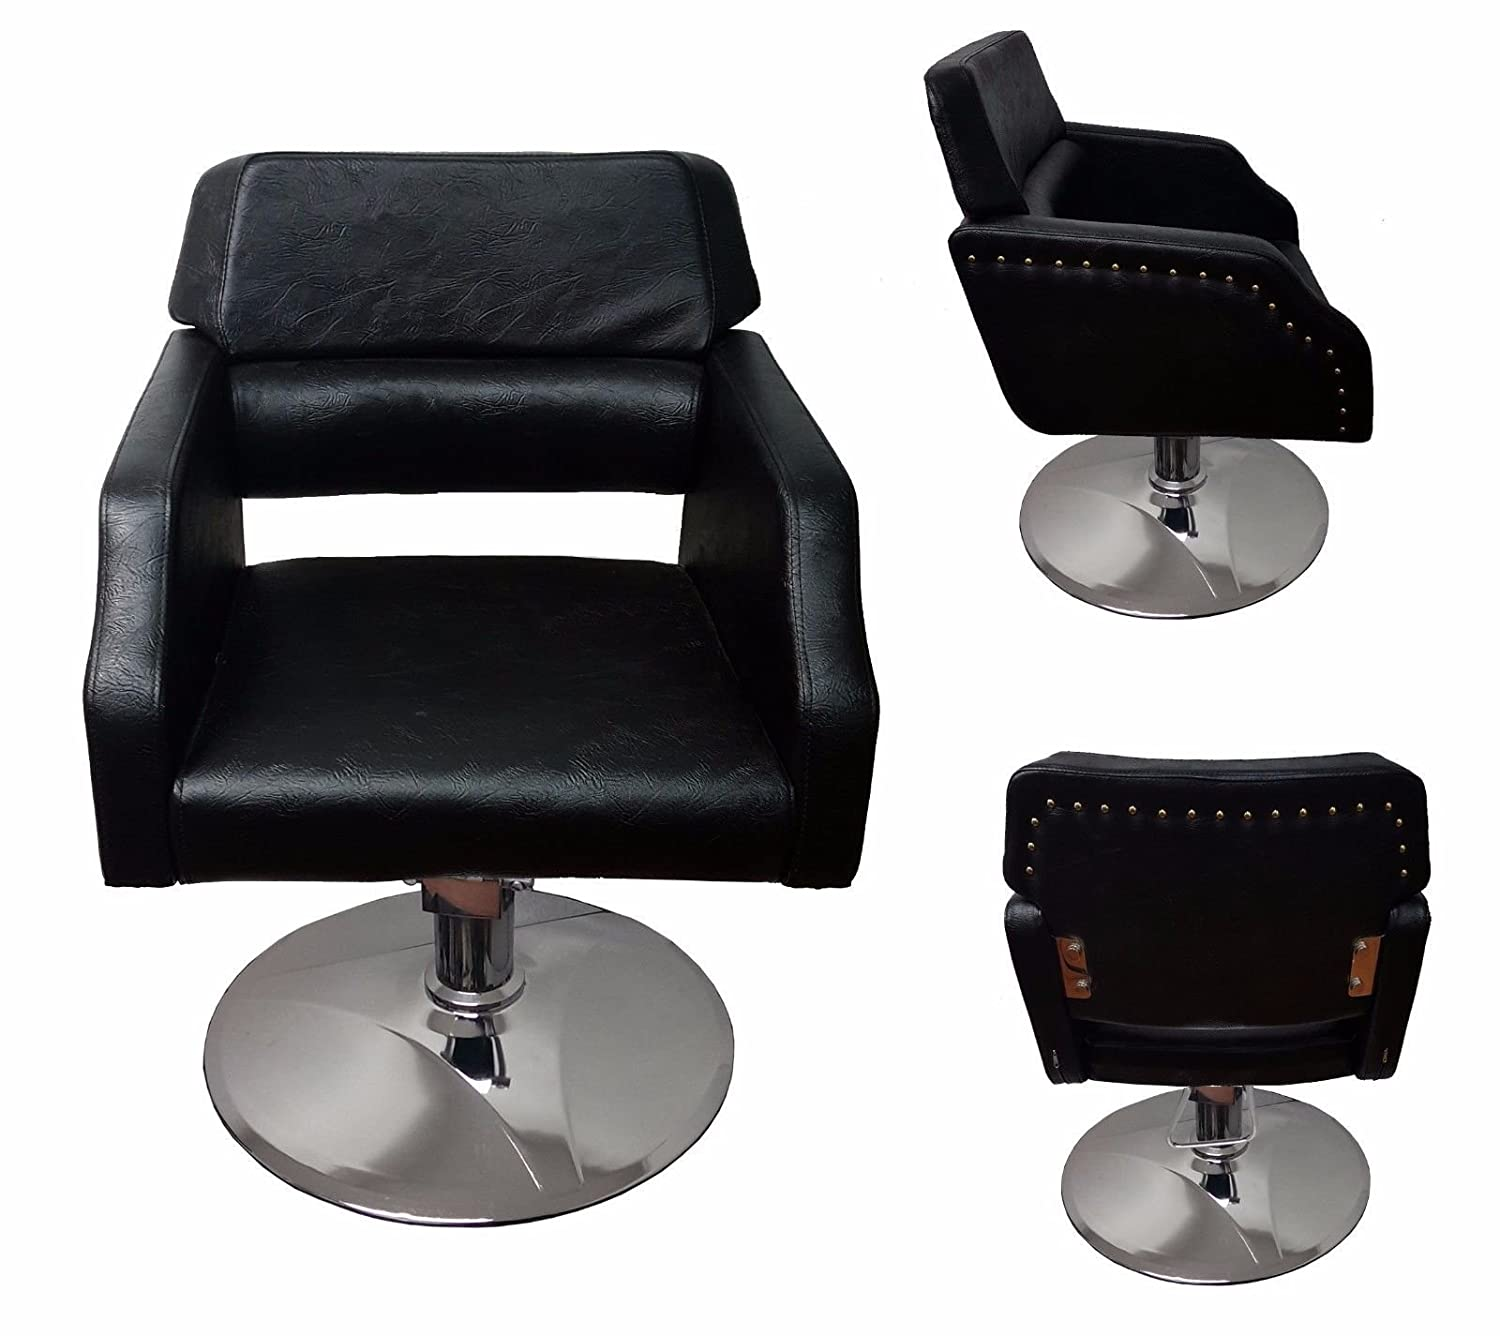 New Design SALON HAIRDRESSING EQUIPMENT FURNITURE BARBER CHAIR 2 colour (Black) Starex